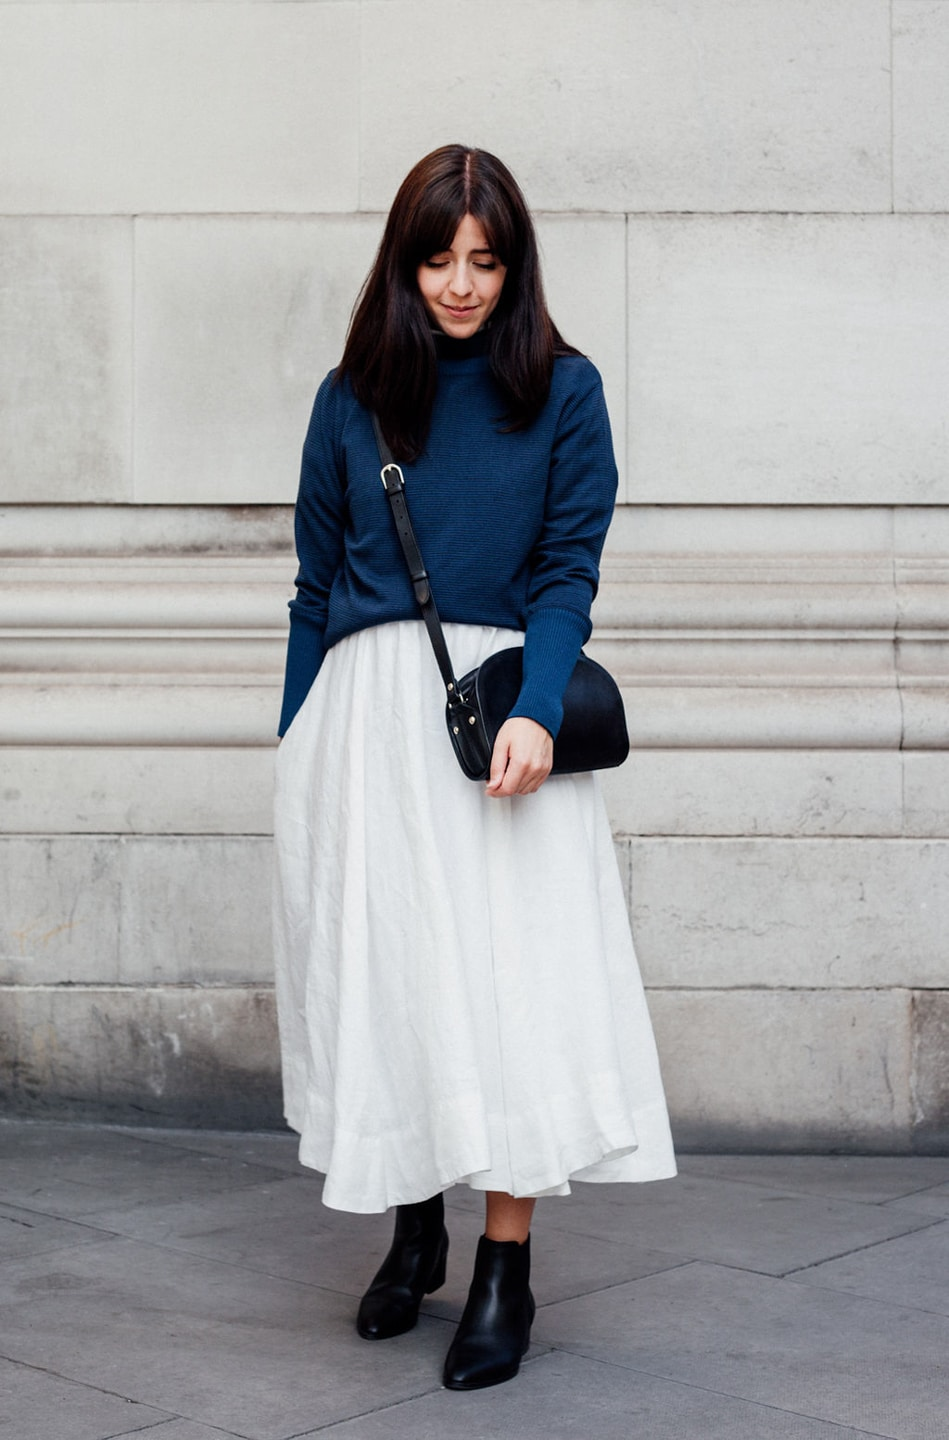 Besma wears white dress with blue jumper and bag